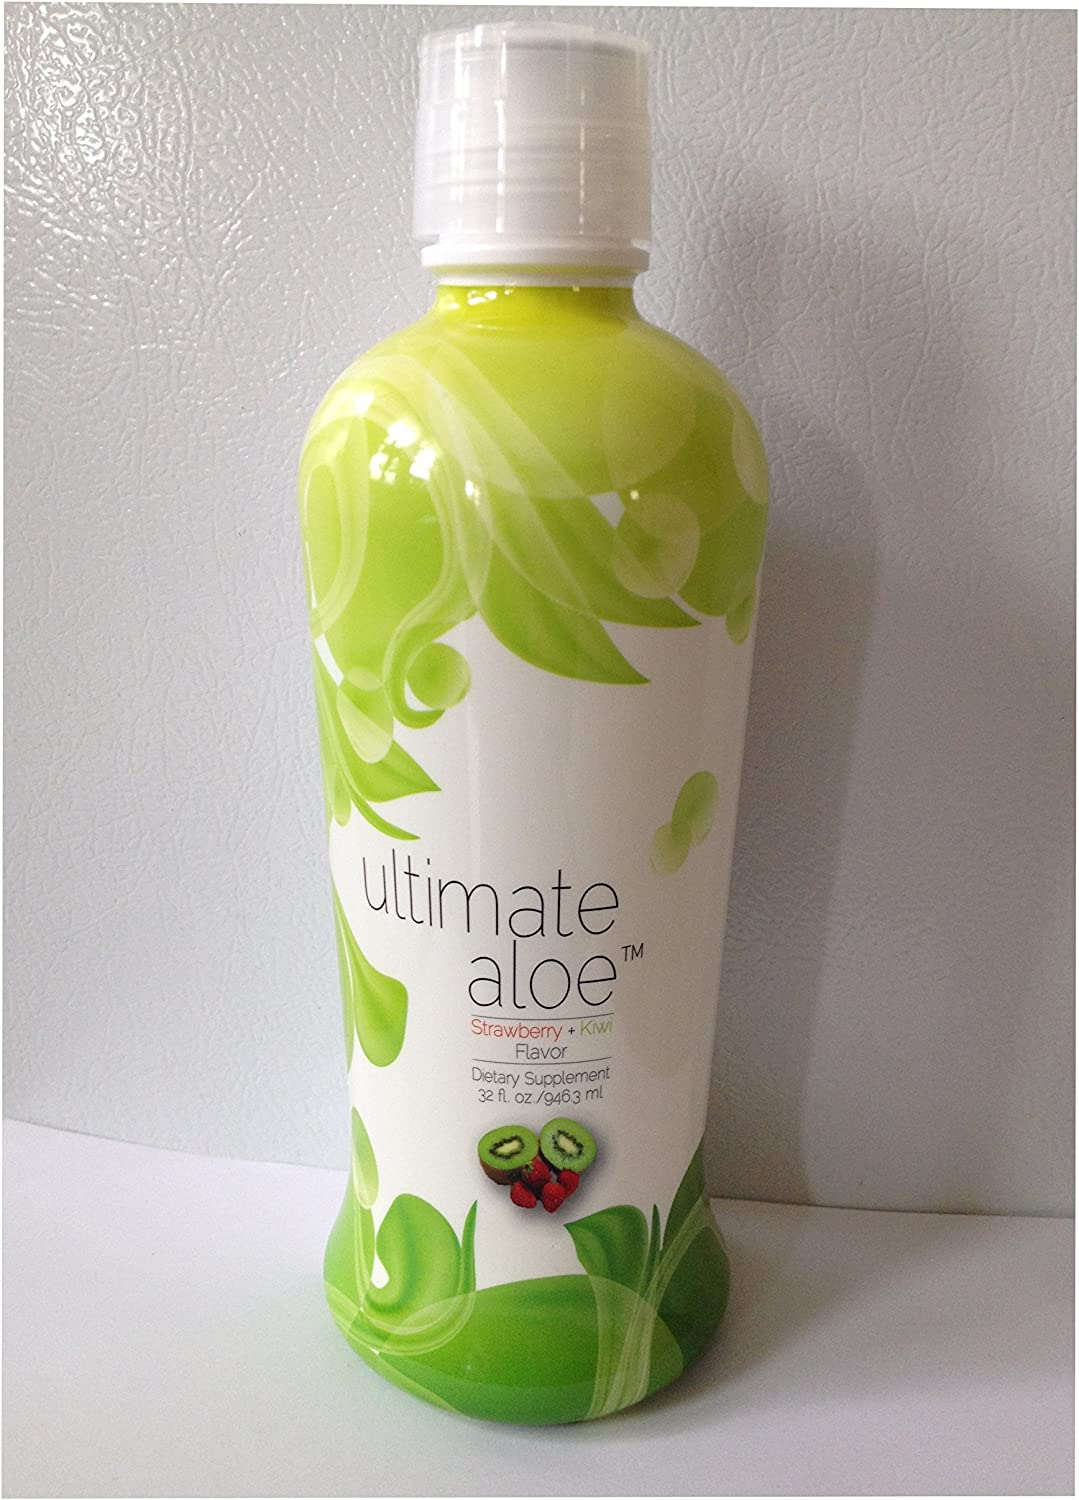 Ultimate Aloe Juice – Strawberry Kiwi